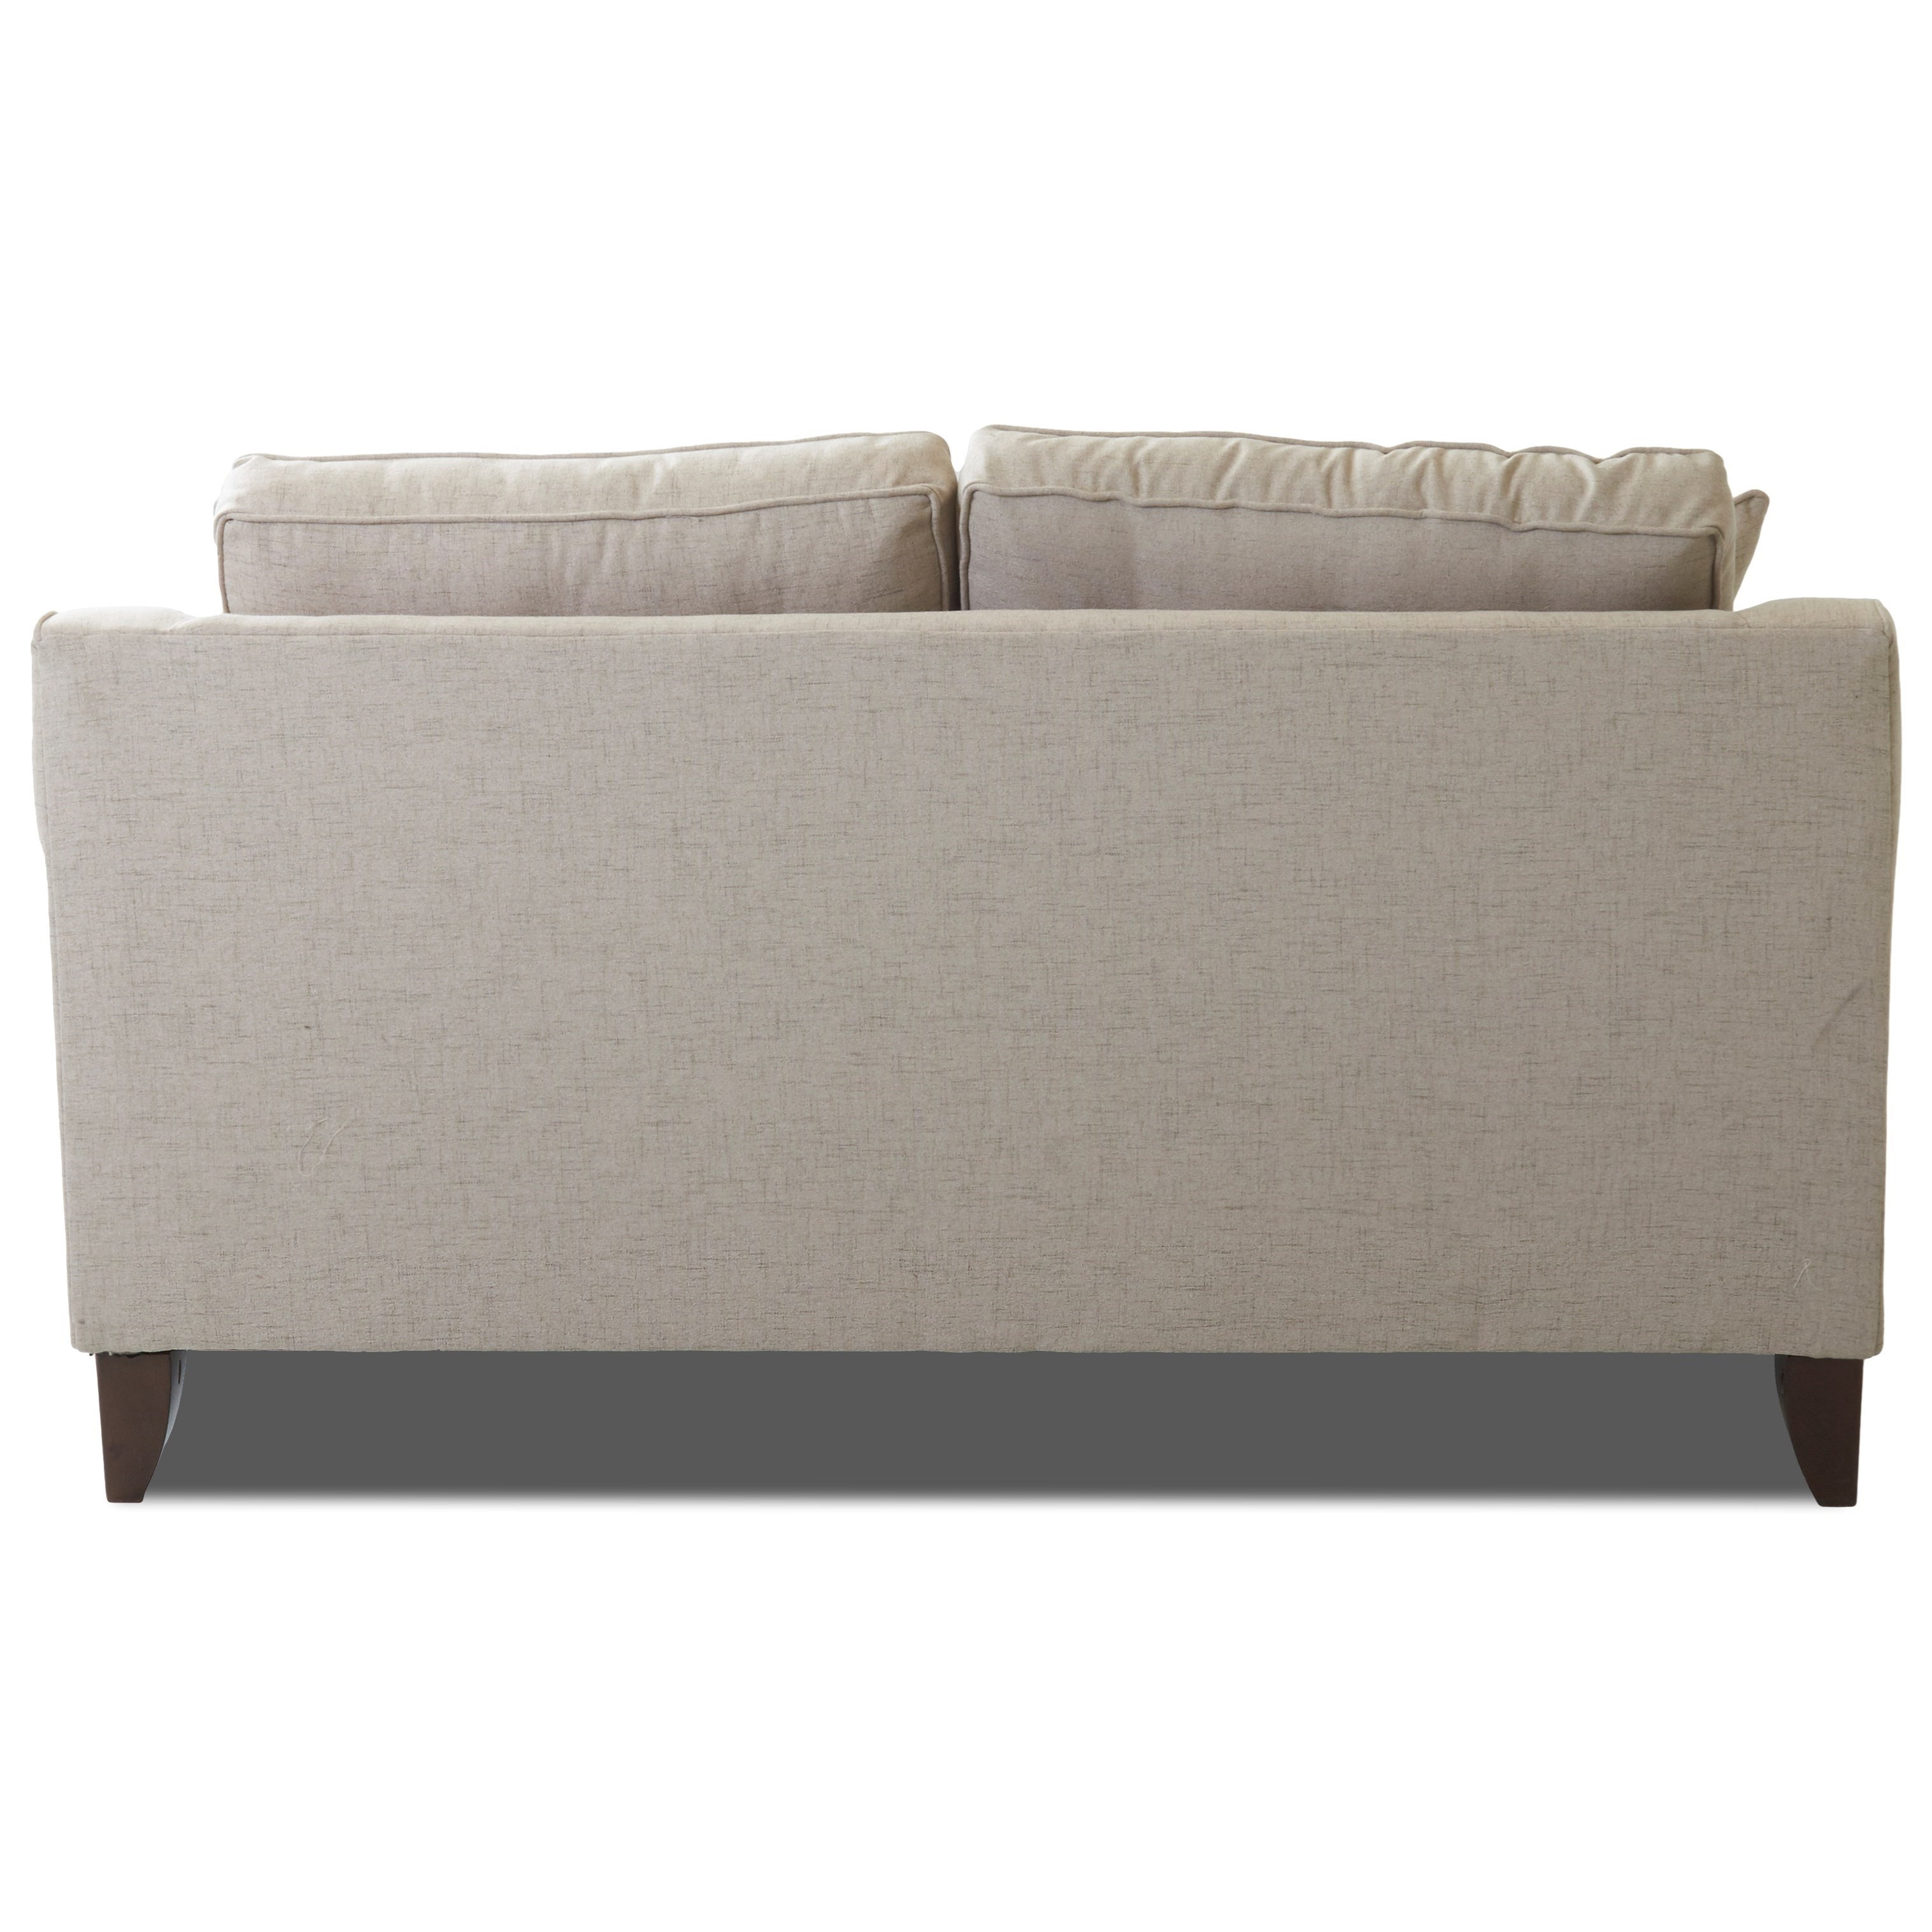 klaussner grand power reclining sofa natuzzi leather bed trisha yearwood home collection by audrina 31603 pwhls high leg loveseat